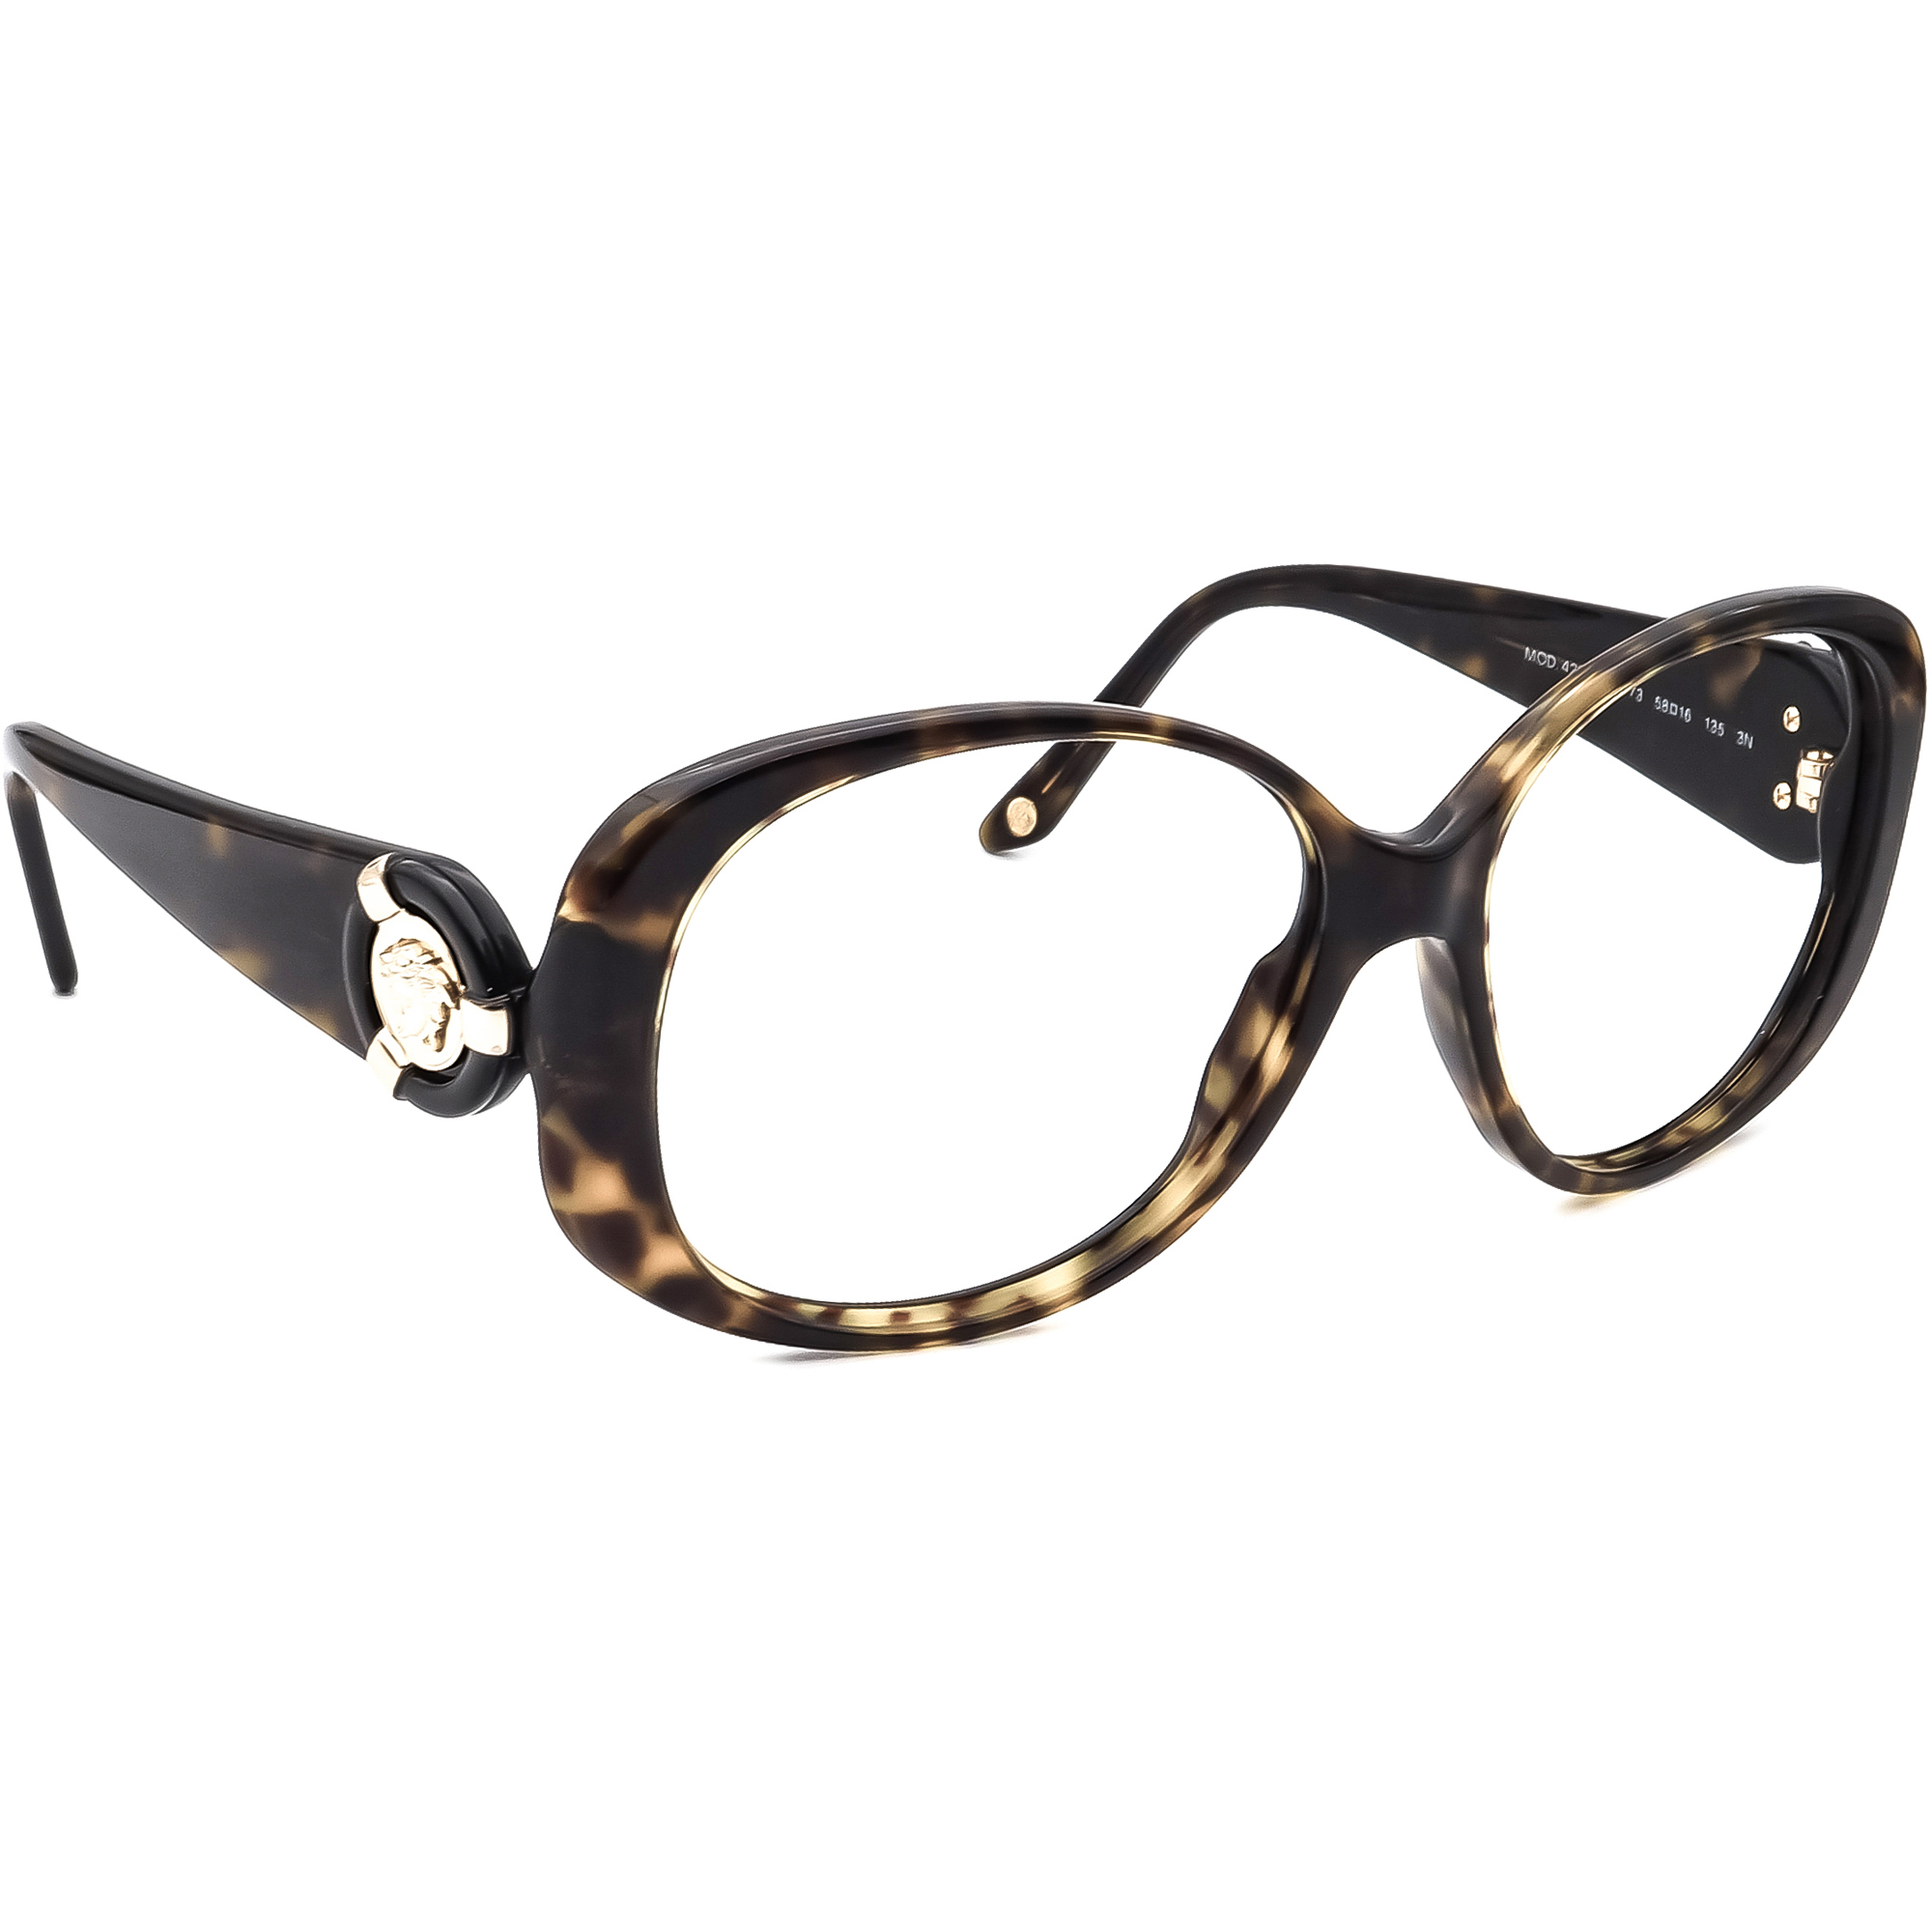 Versace MOD. 4221 108/73 Sunglasses Frame Only